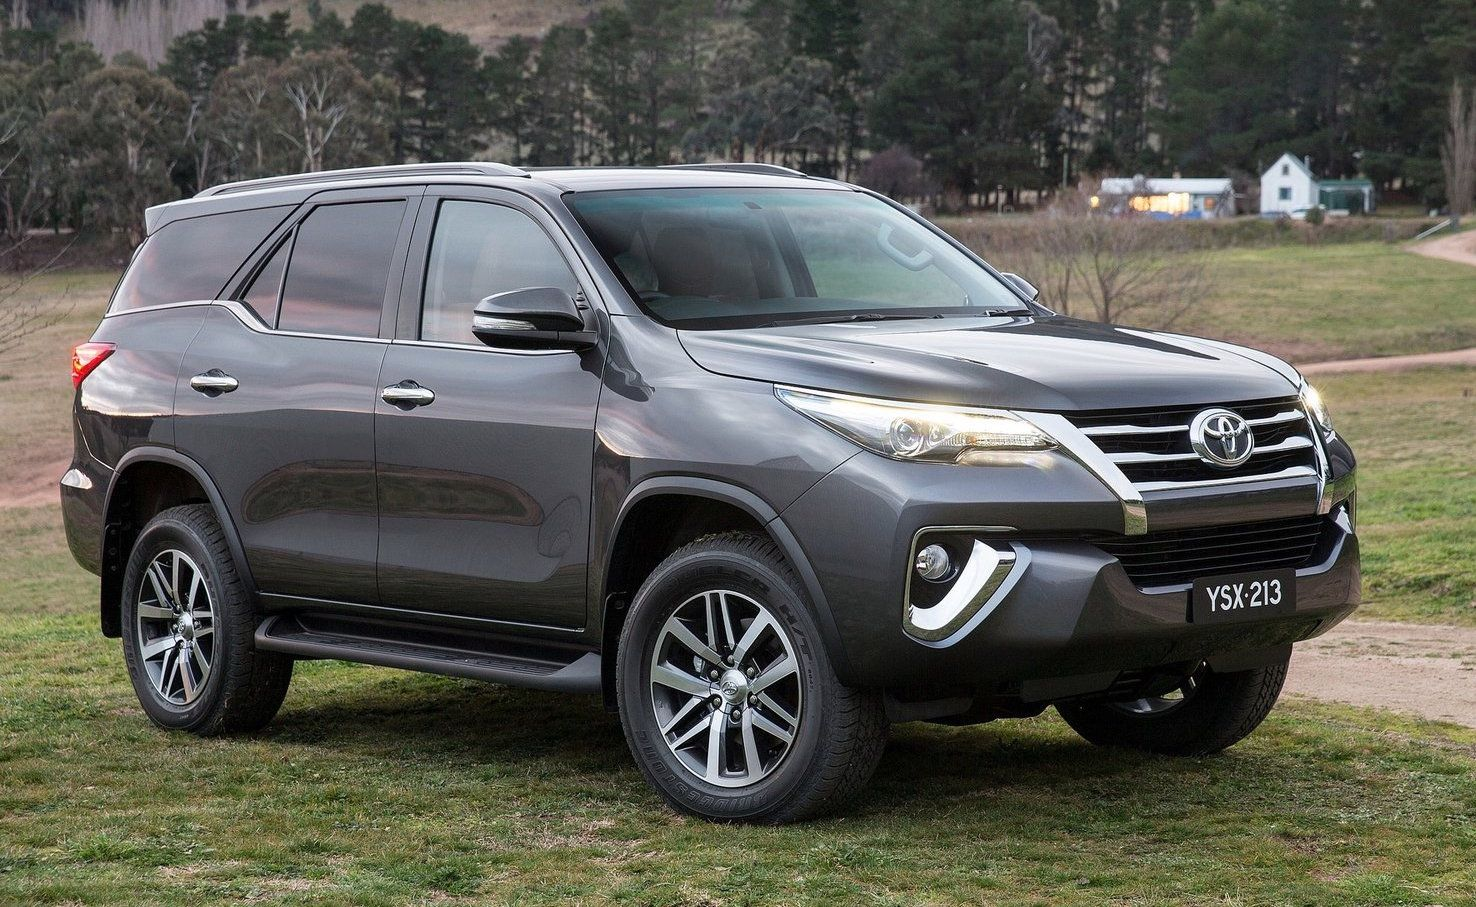 Toyota Fortuner 2021 Prices In 2020 Toyota Toyota Suv Toyota Cars